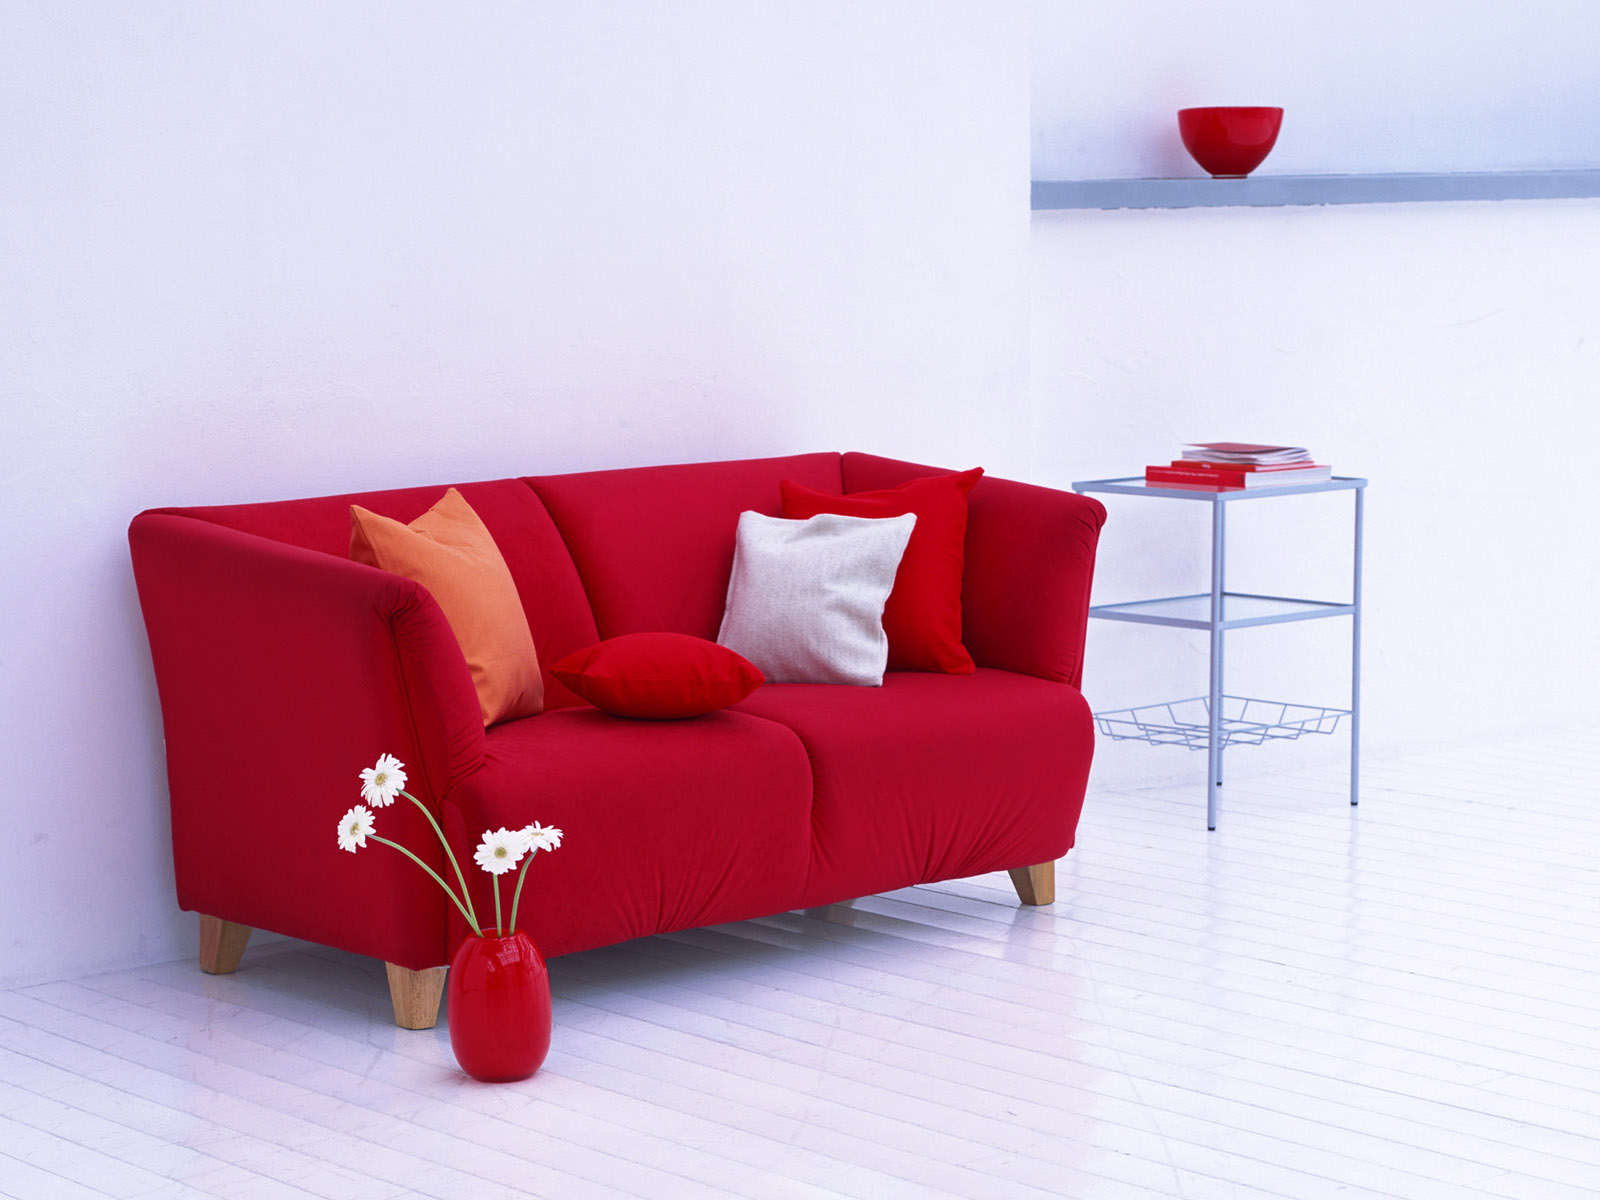 red couch computer wallpaper 49076